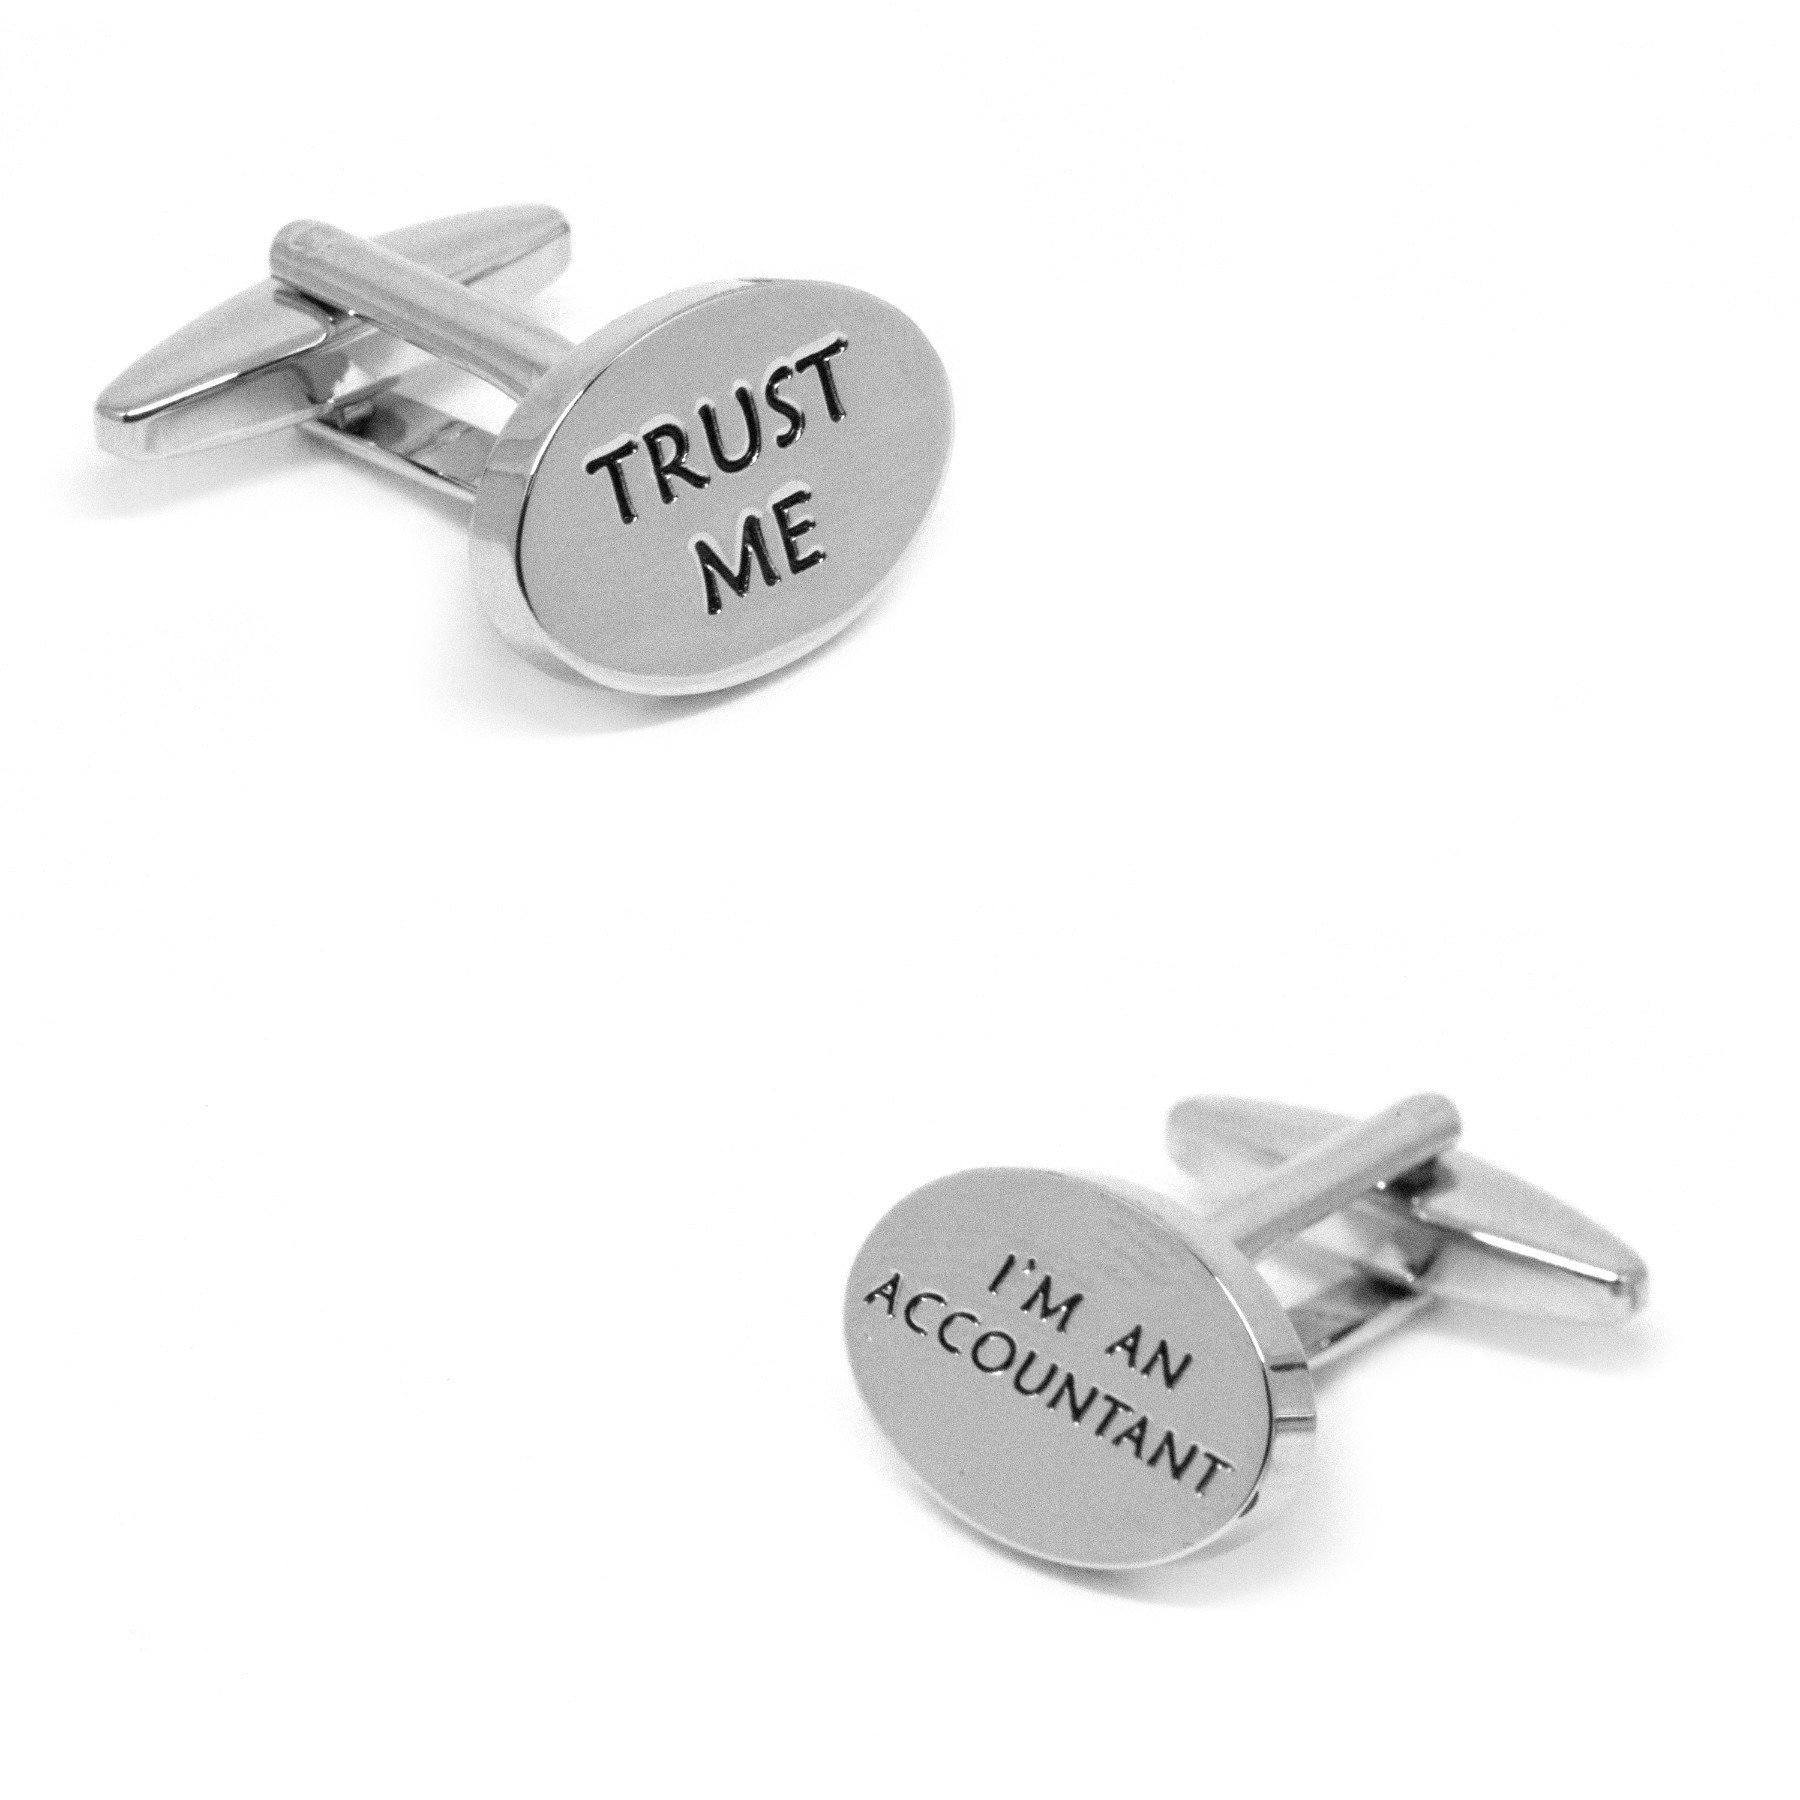 """Trust Me, I'm an Accountant"" Silver Cufflinks, Novelty Cufflinks, Cuffed.com.au, CL9121, $29.00"